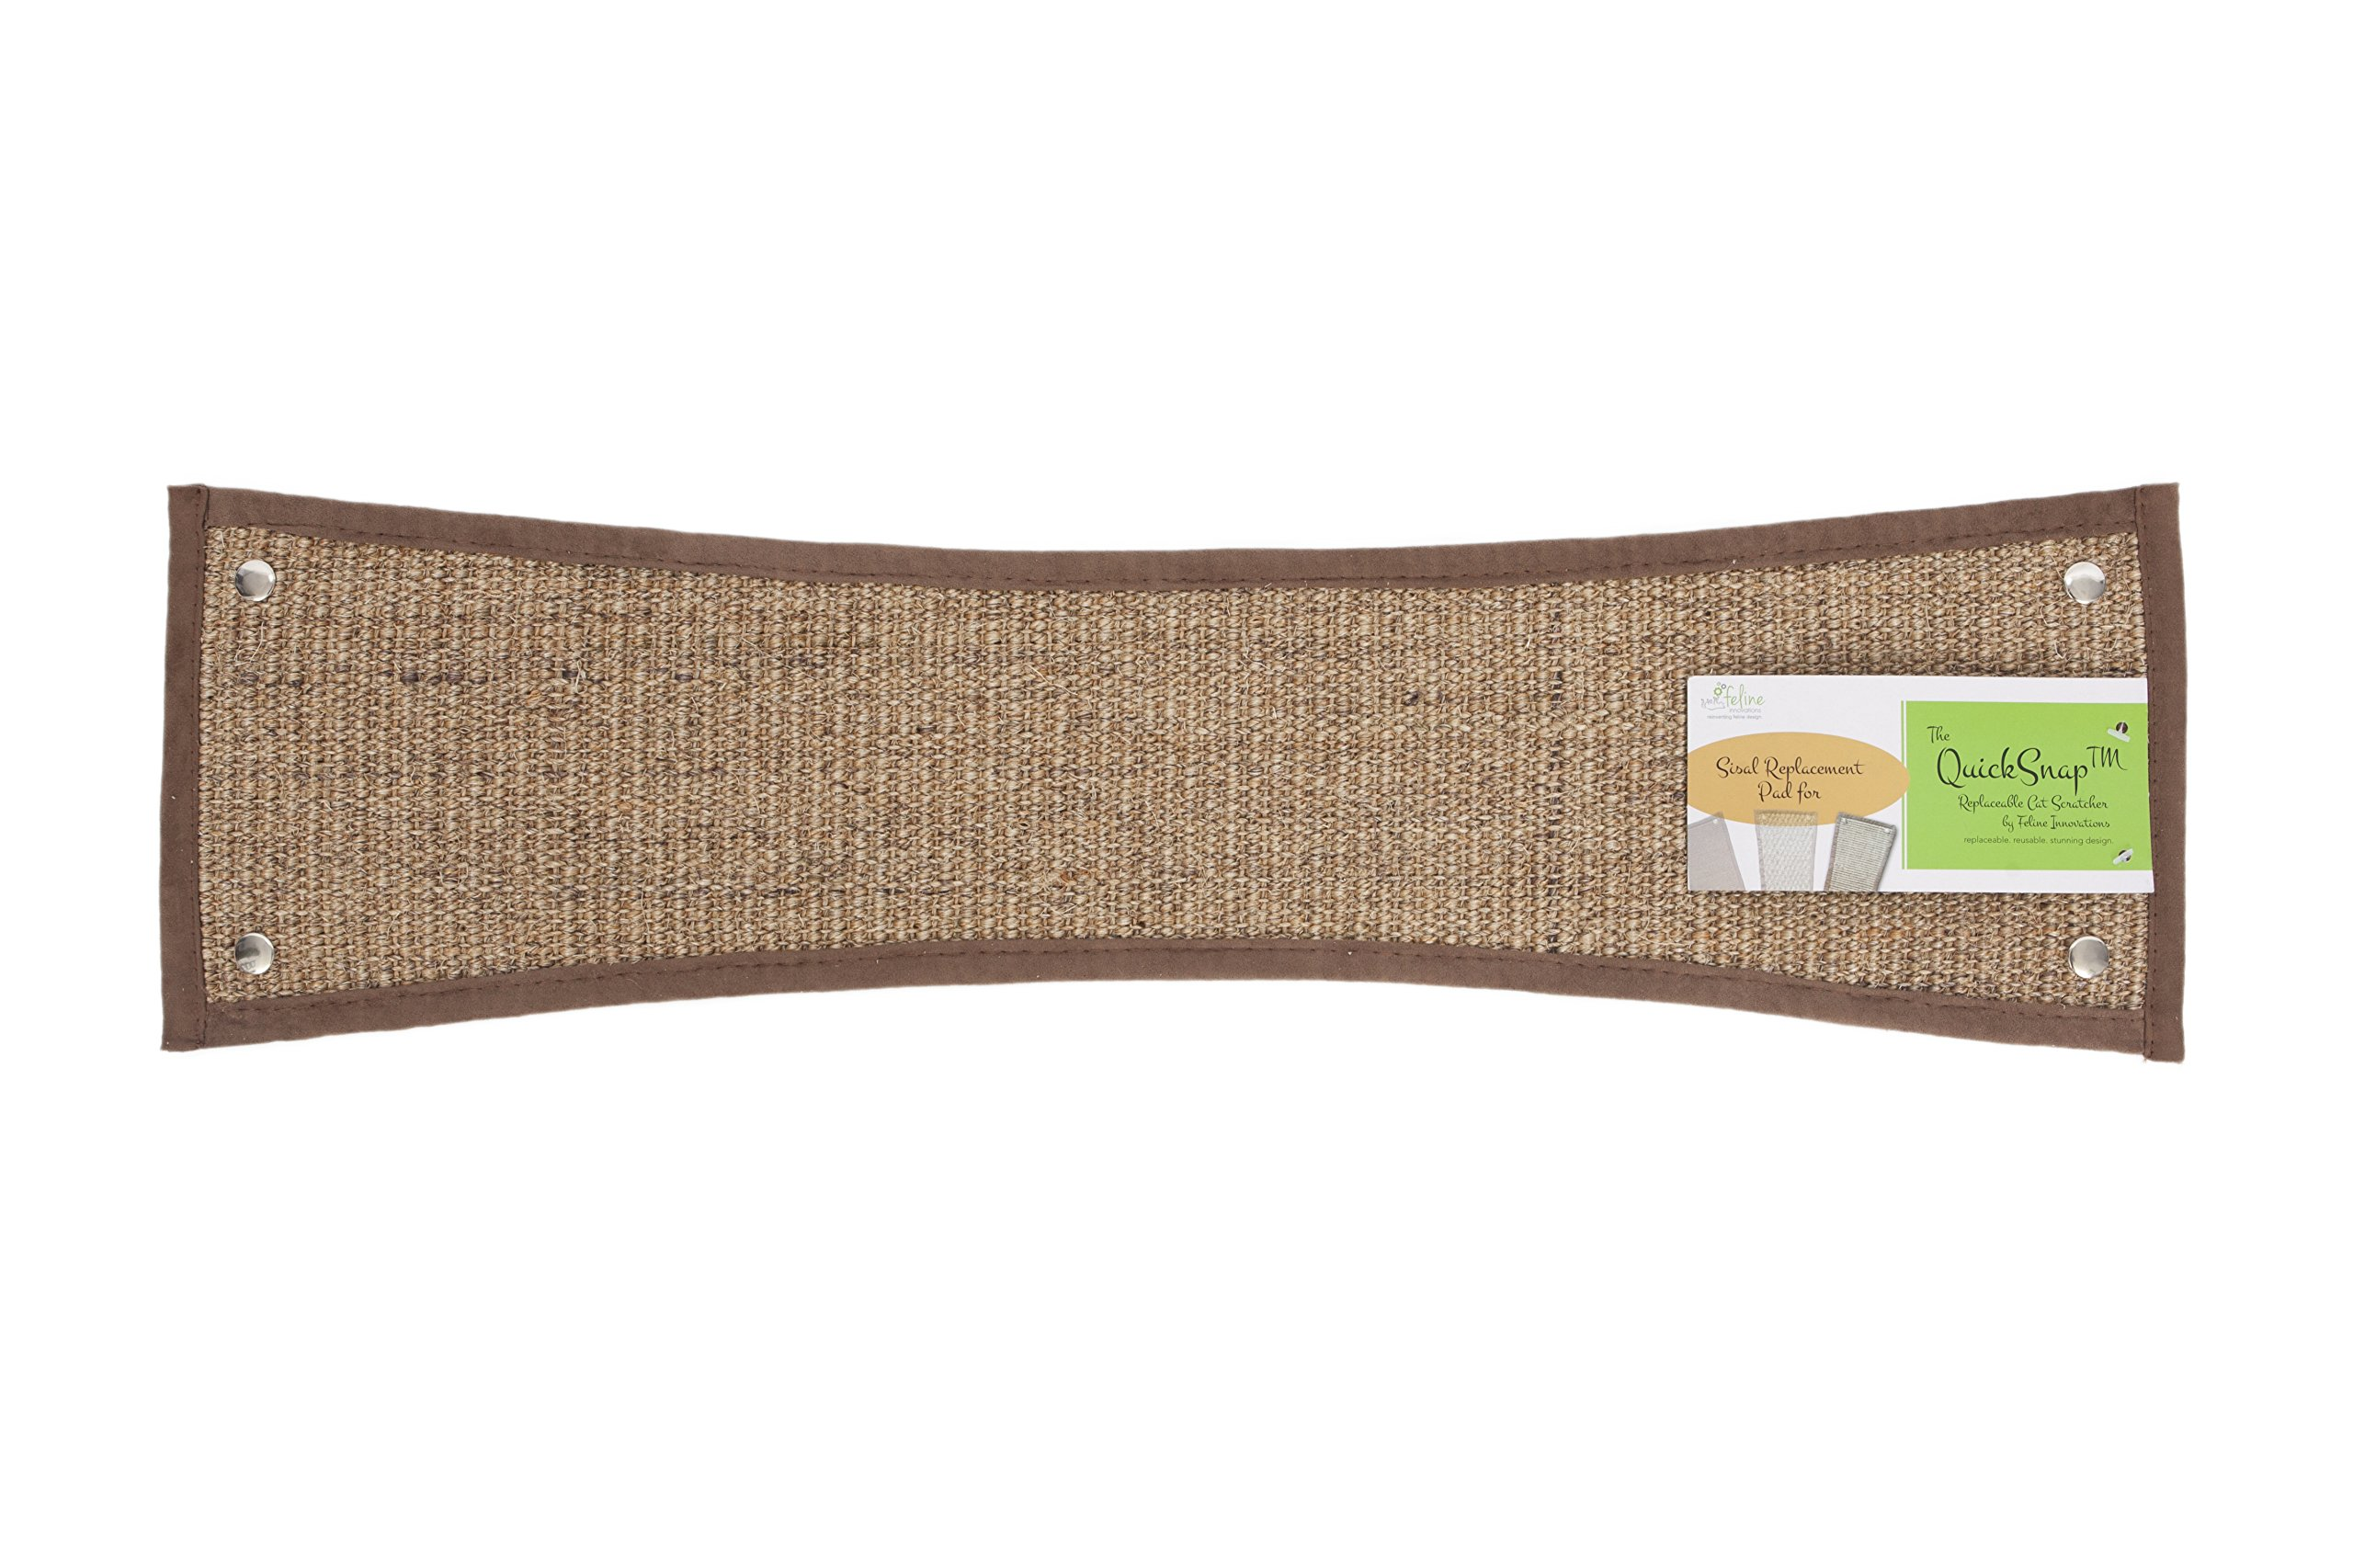 Feline Innovations QuickSnap Sisal Replacement Scratching Pad